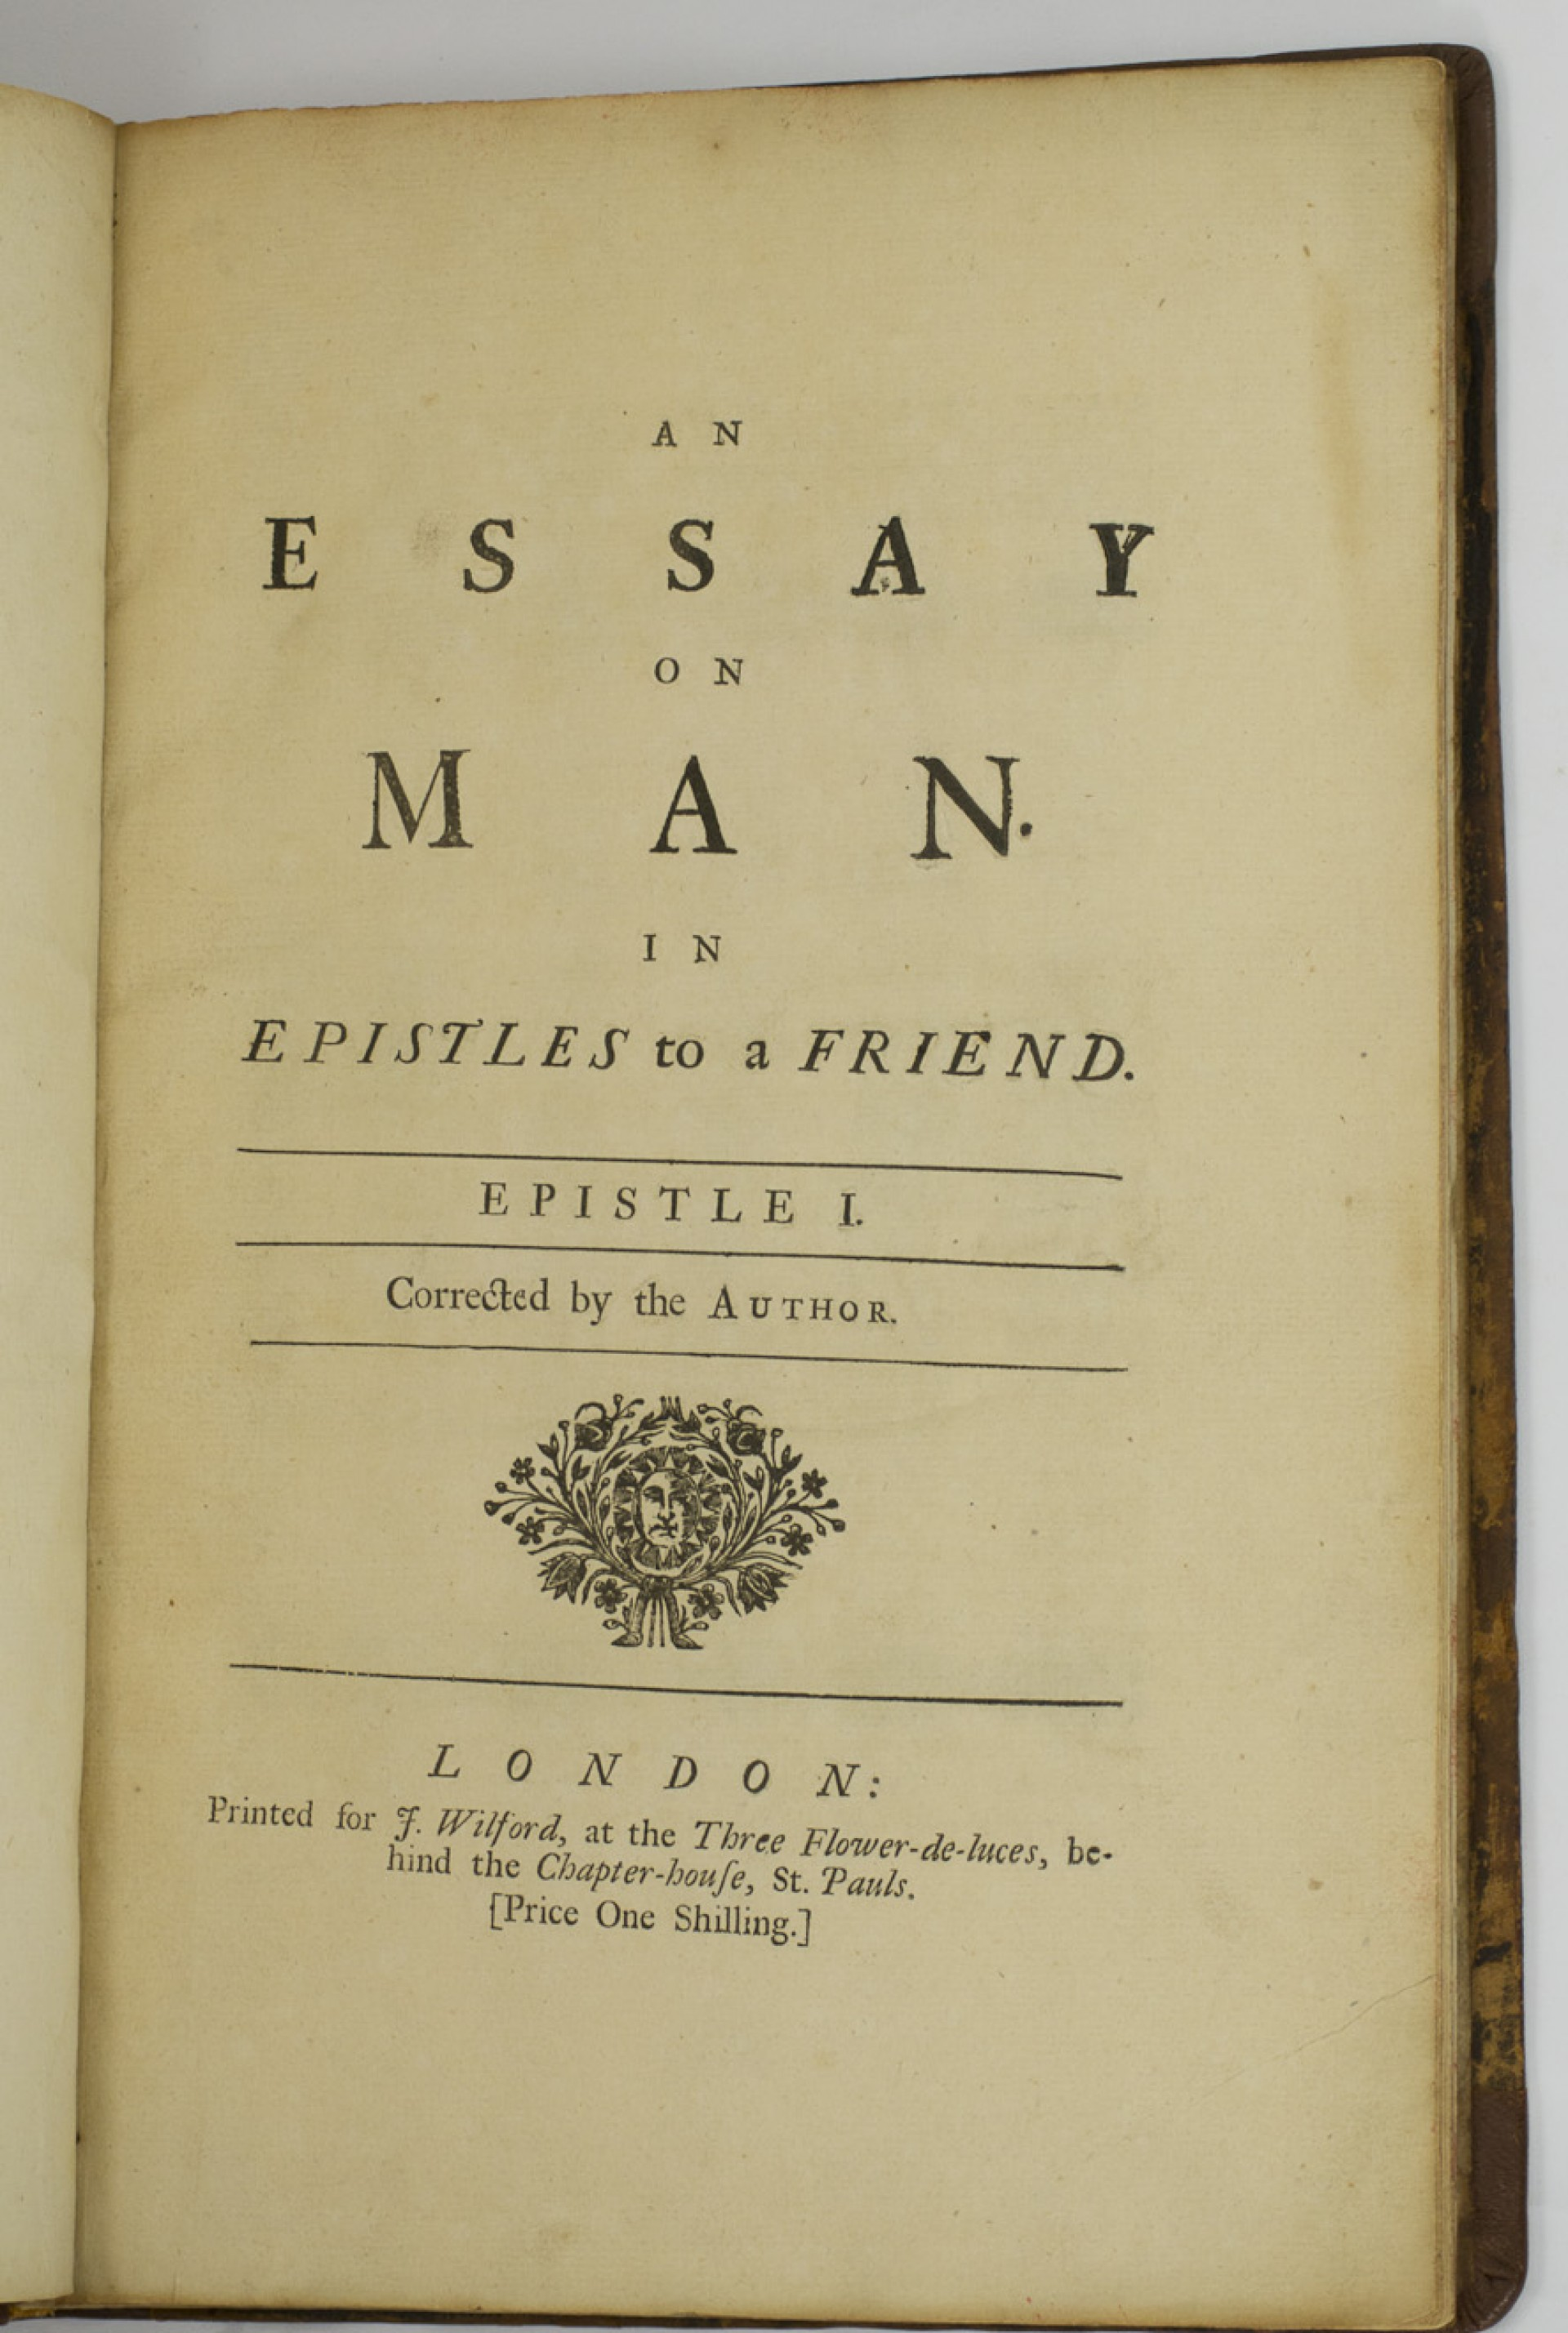 003 An Essay On Man 65395 3 Fantastic Epistle 2 Meaning Summary Sparknotes Part 1 1920